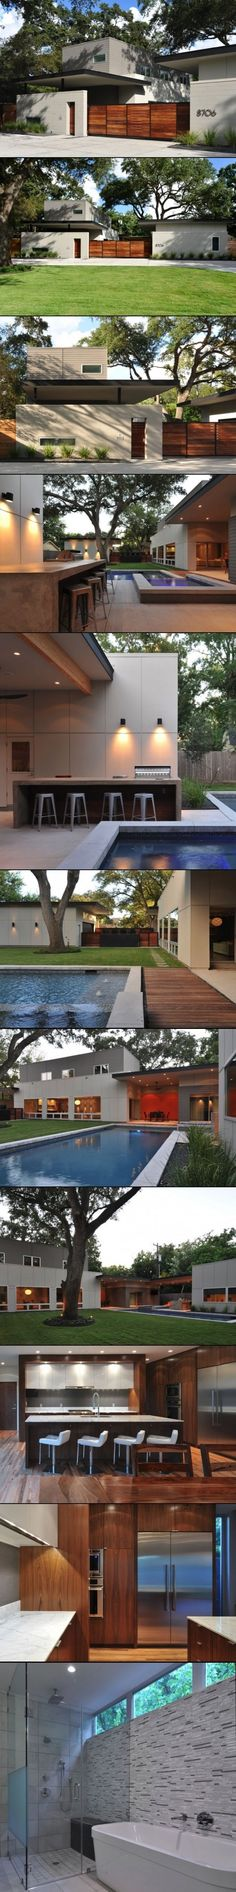 Spring Valley House by StudioMET Houston-based Architectural firm StudioMET has designed the Spring Valley